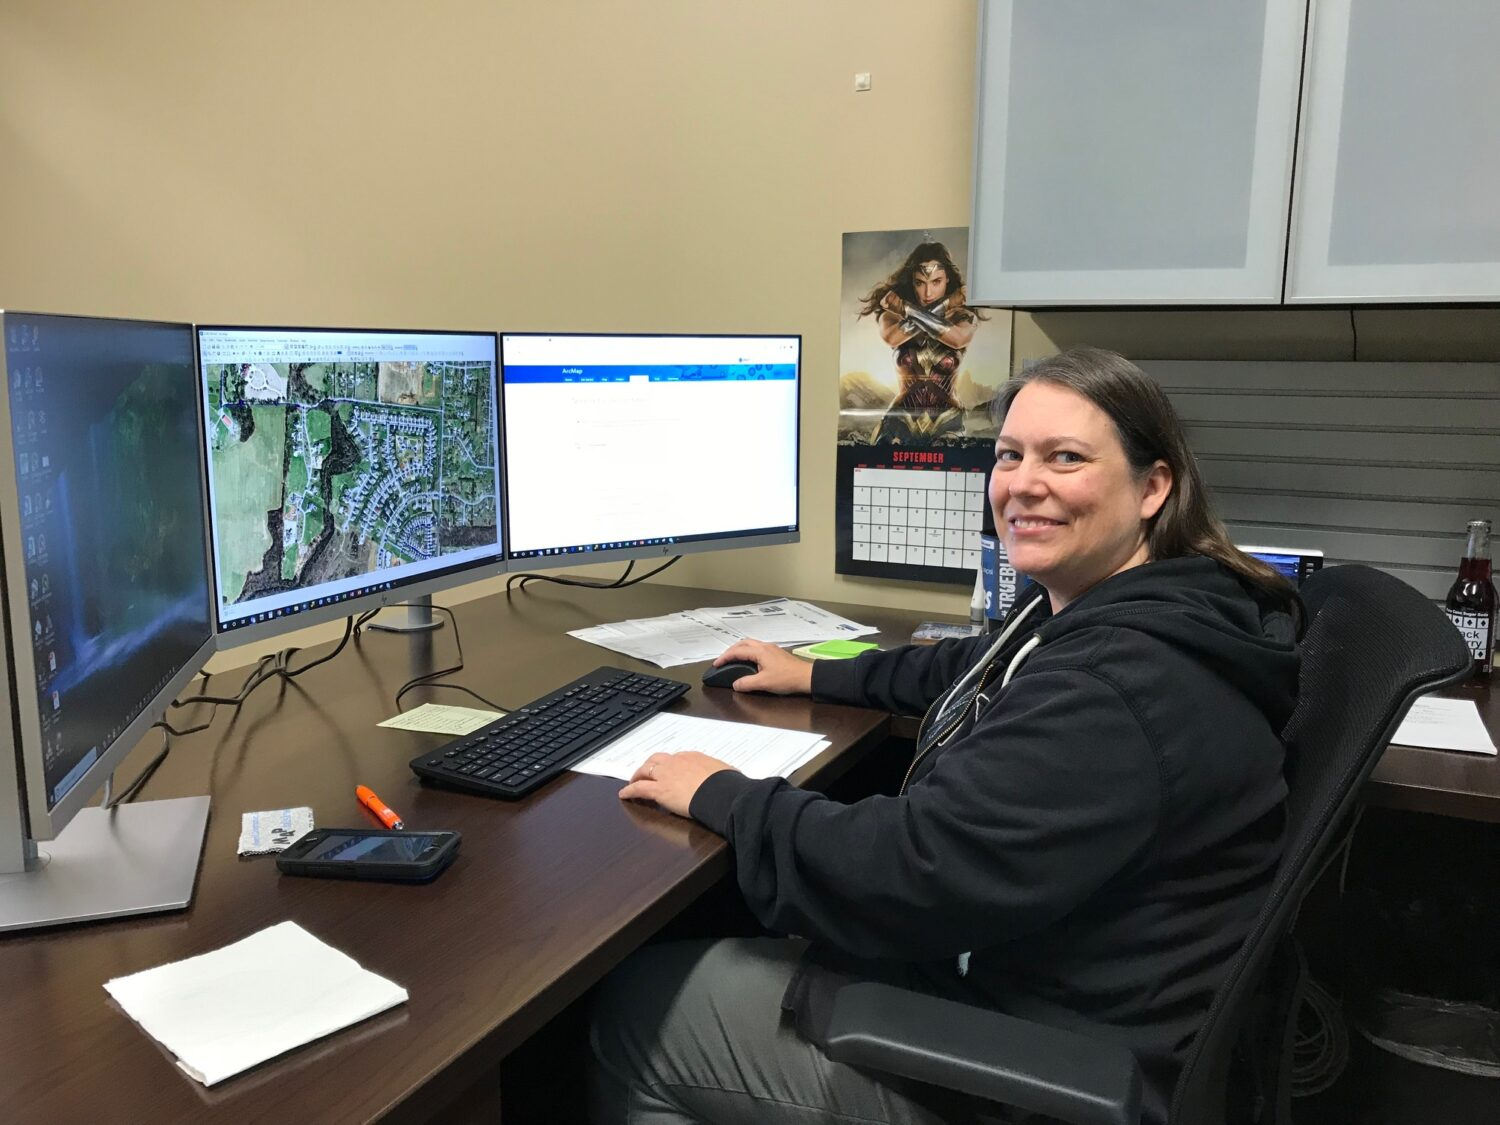 CUD's Geographic Information System Coordinator Bethany Hall